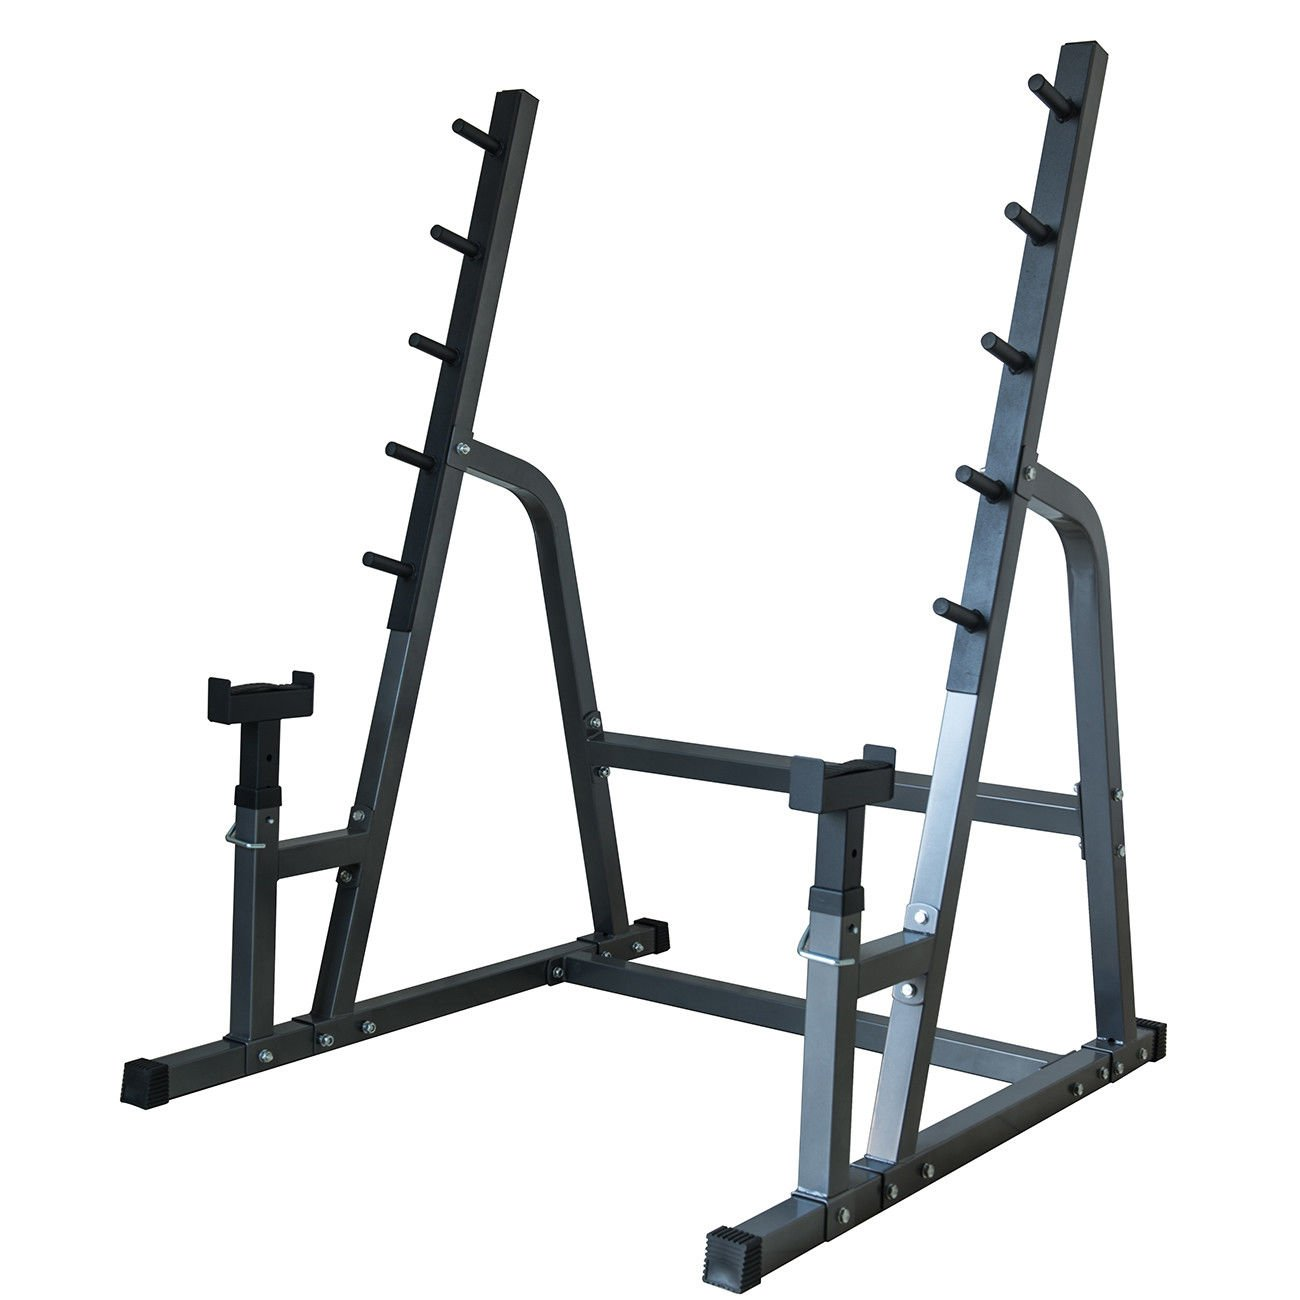 Deluxe Squat/Bench Combo Rack Fitness Exercise Equipment Safety Function Set by Eight24hours